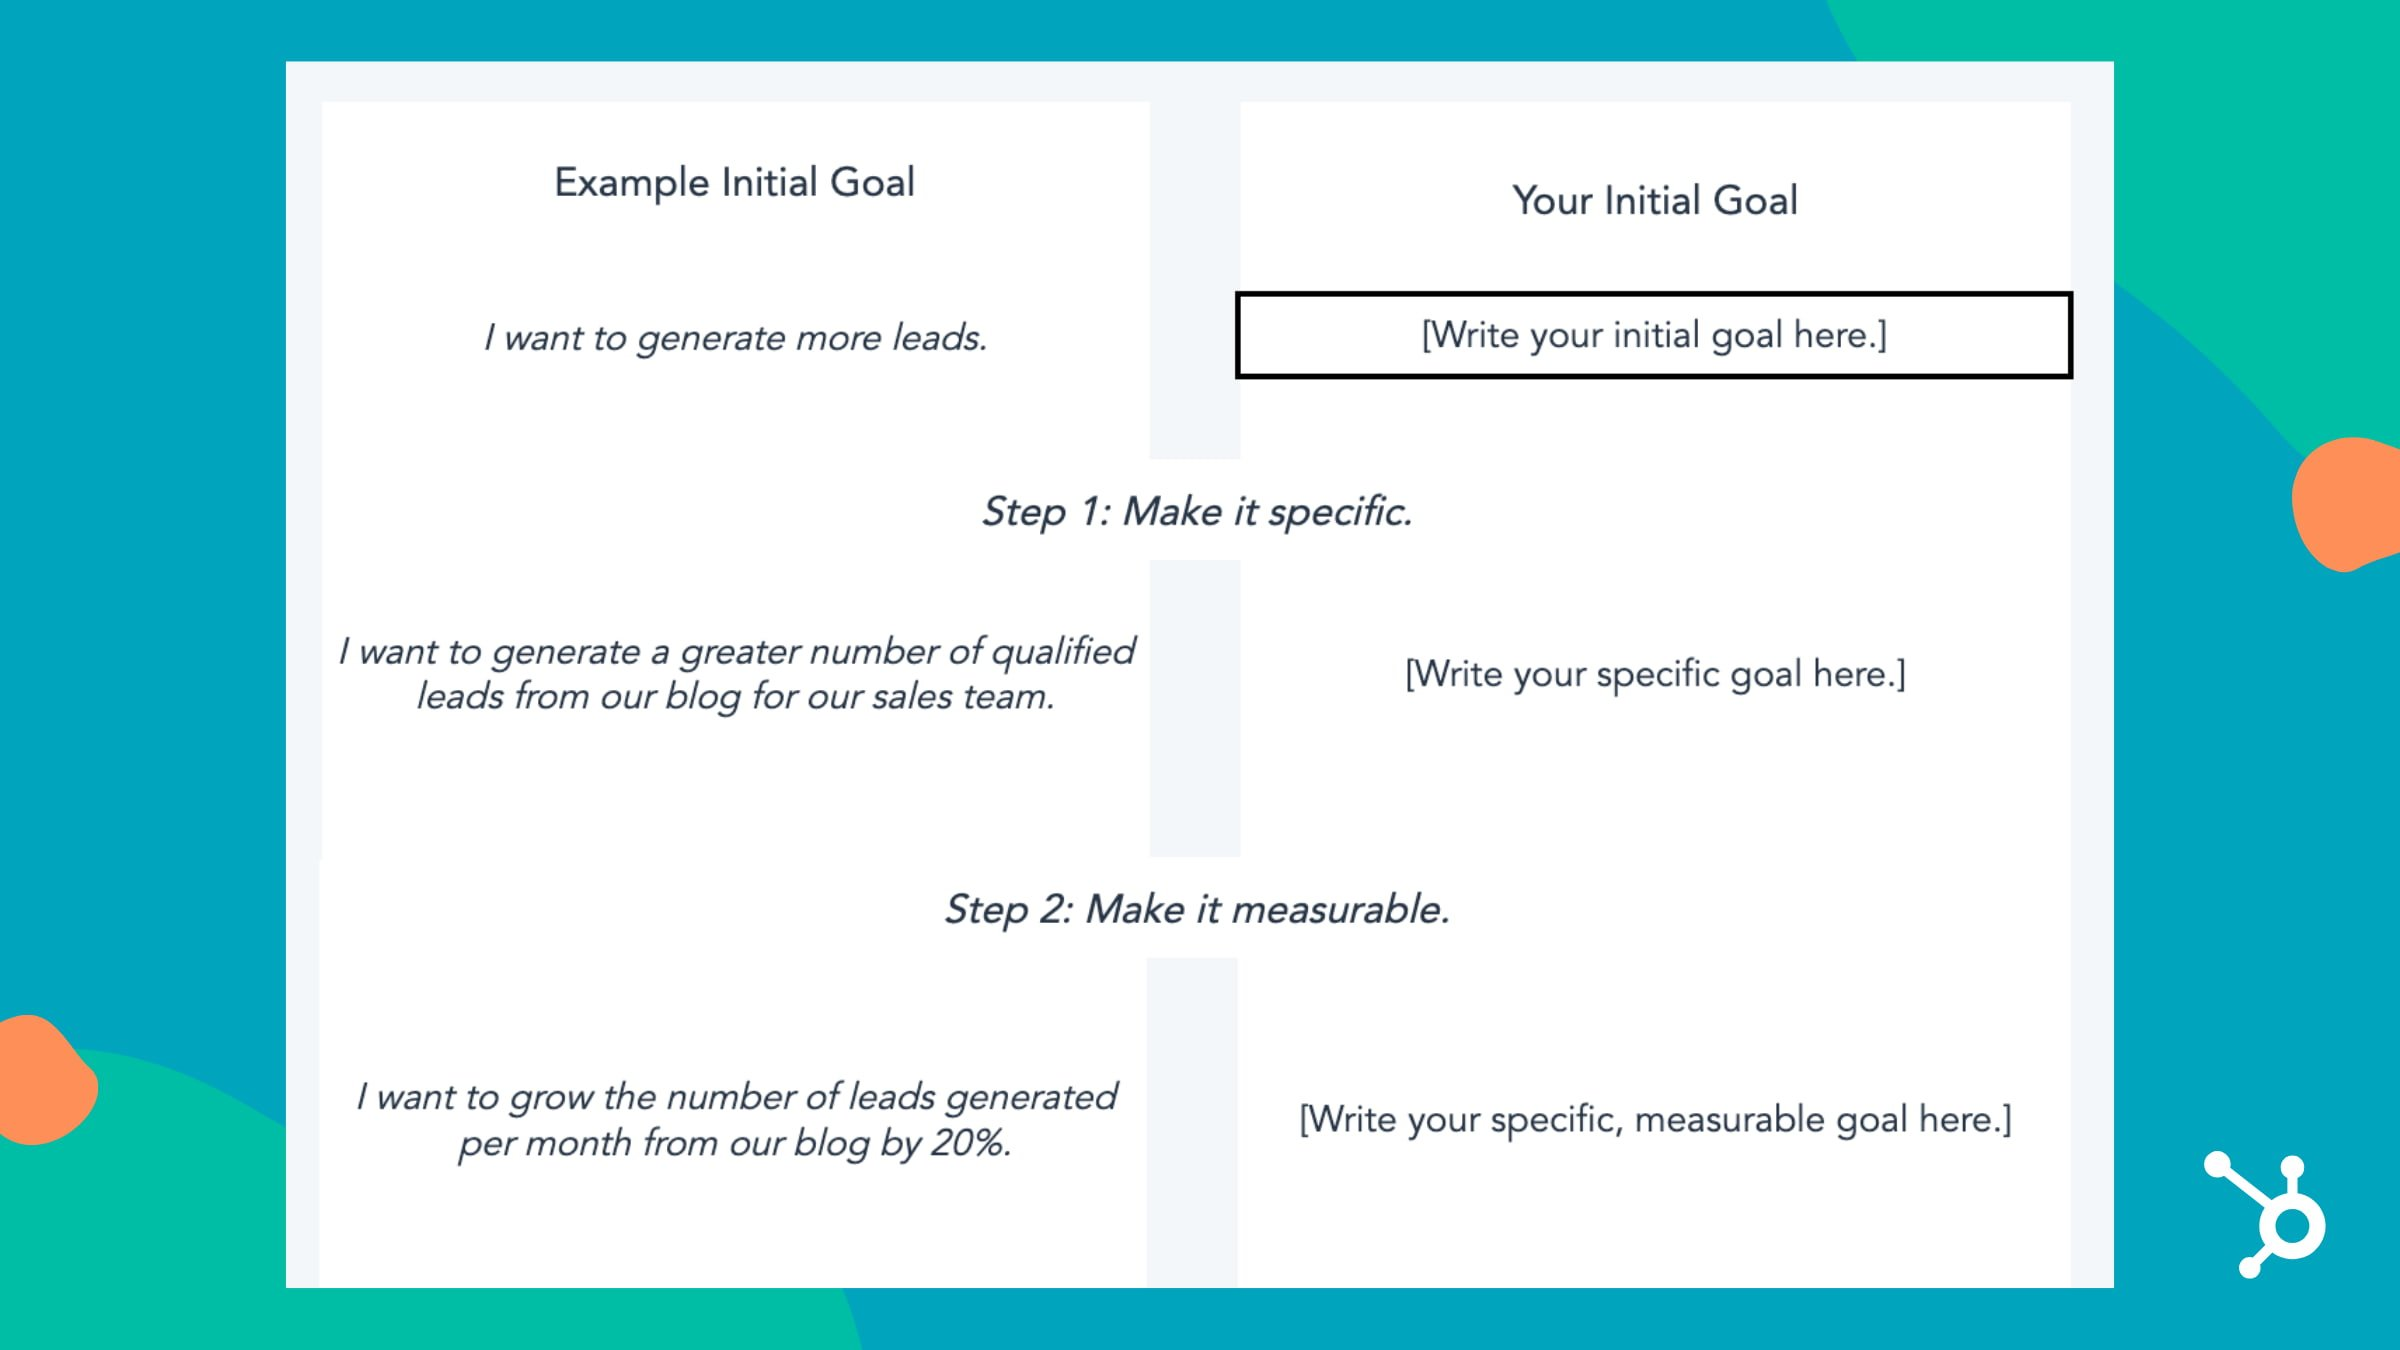 sample goal setting template section for outlining initial goals